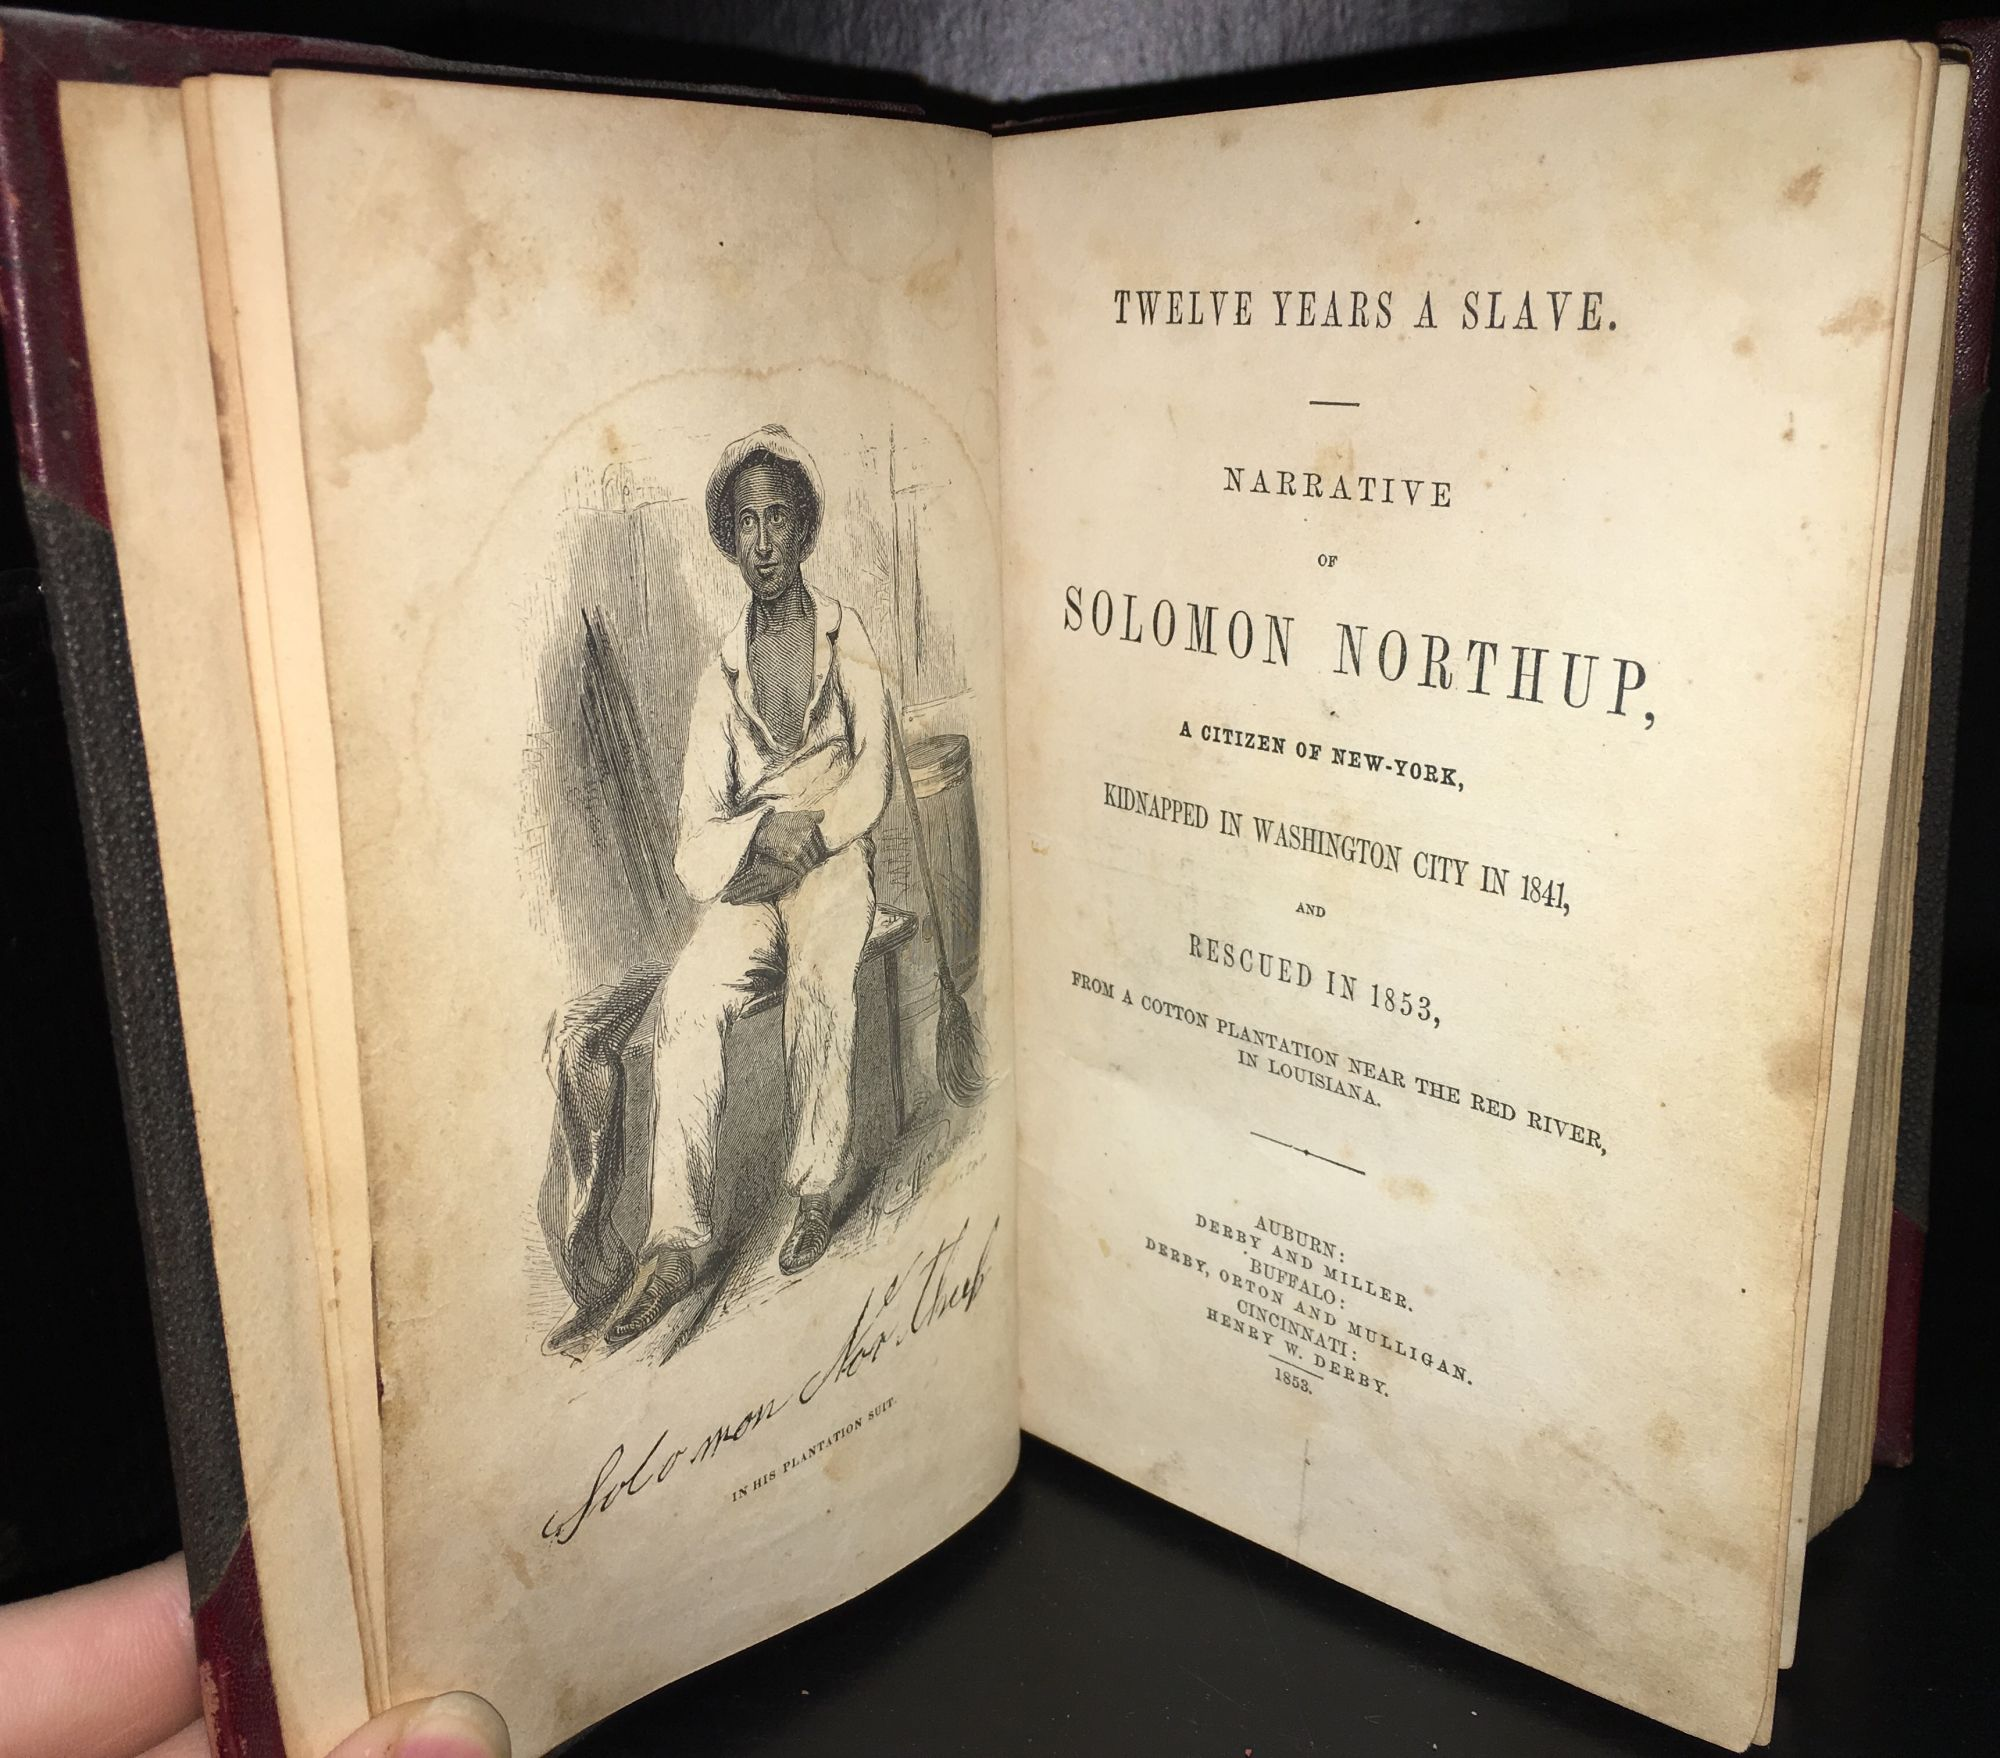 TWELVE YEARS A SLAVE. NARRATIVE OF SOLOMON NORTHUP, A CITIZEN OF NEW-YORK, KIDNAPPED IN WASHINGTON CITY IN 1841, AND RESCUED IN 1853, FROM A COTTON PLANTATION NEAR THE RED RIVER, IN LOUISIANA. Solomon Northup, David Wilson.